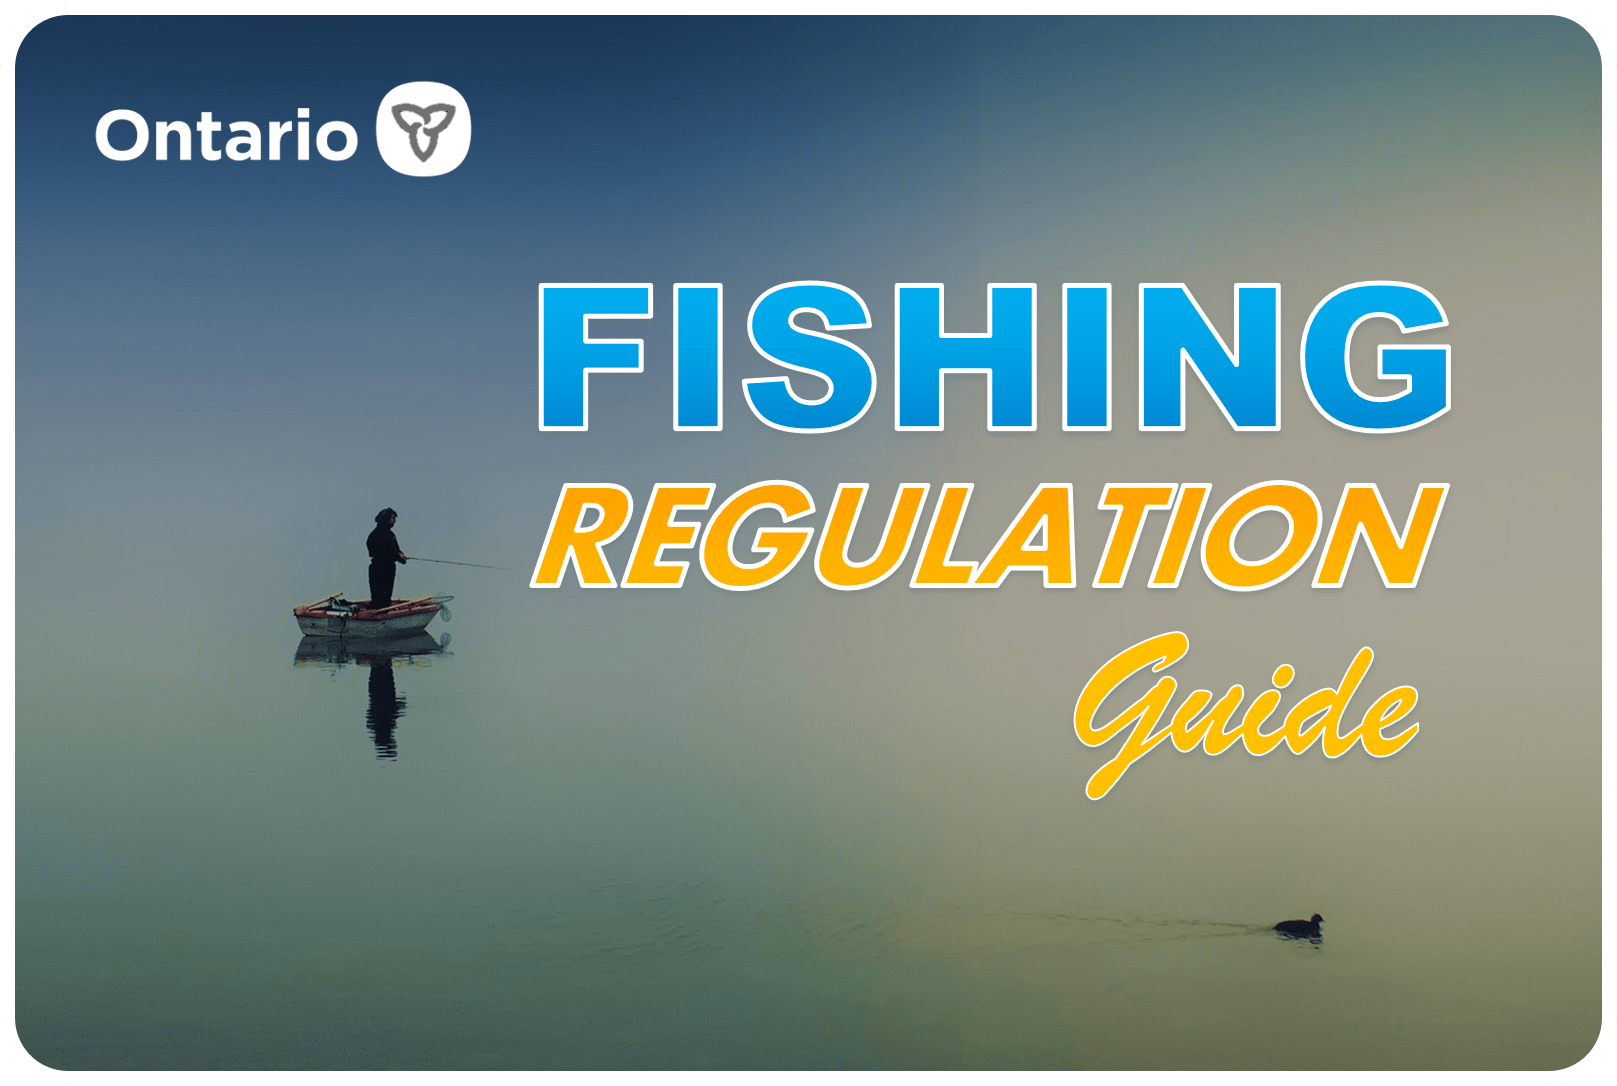 Ontario Fishing Regulation Guide | Fishing World | Hamilton, Ontario, Canada